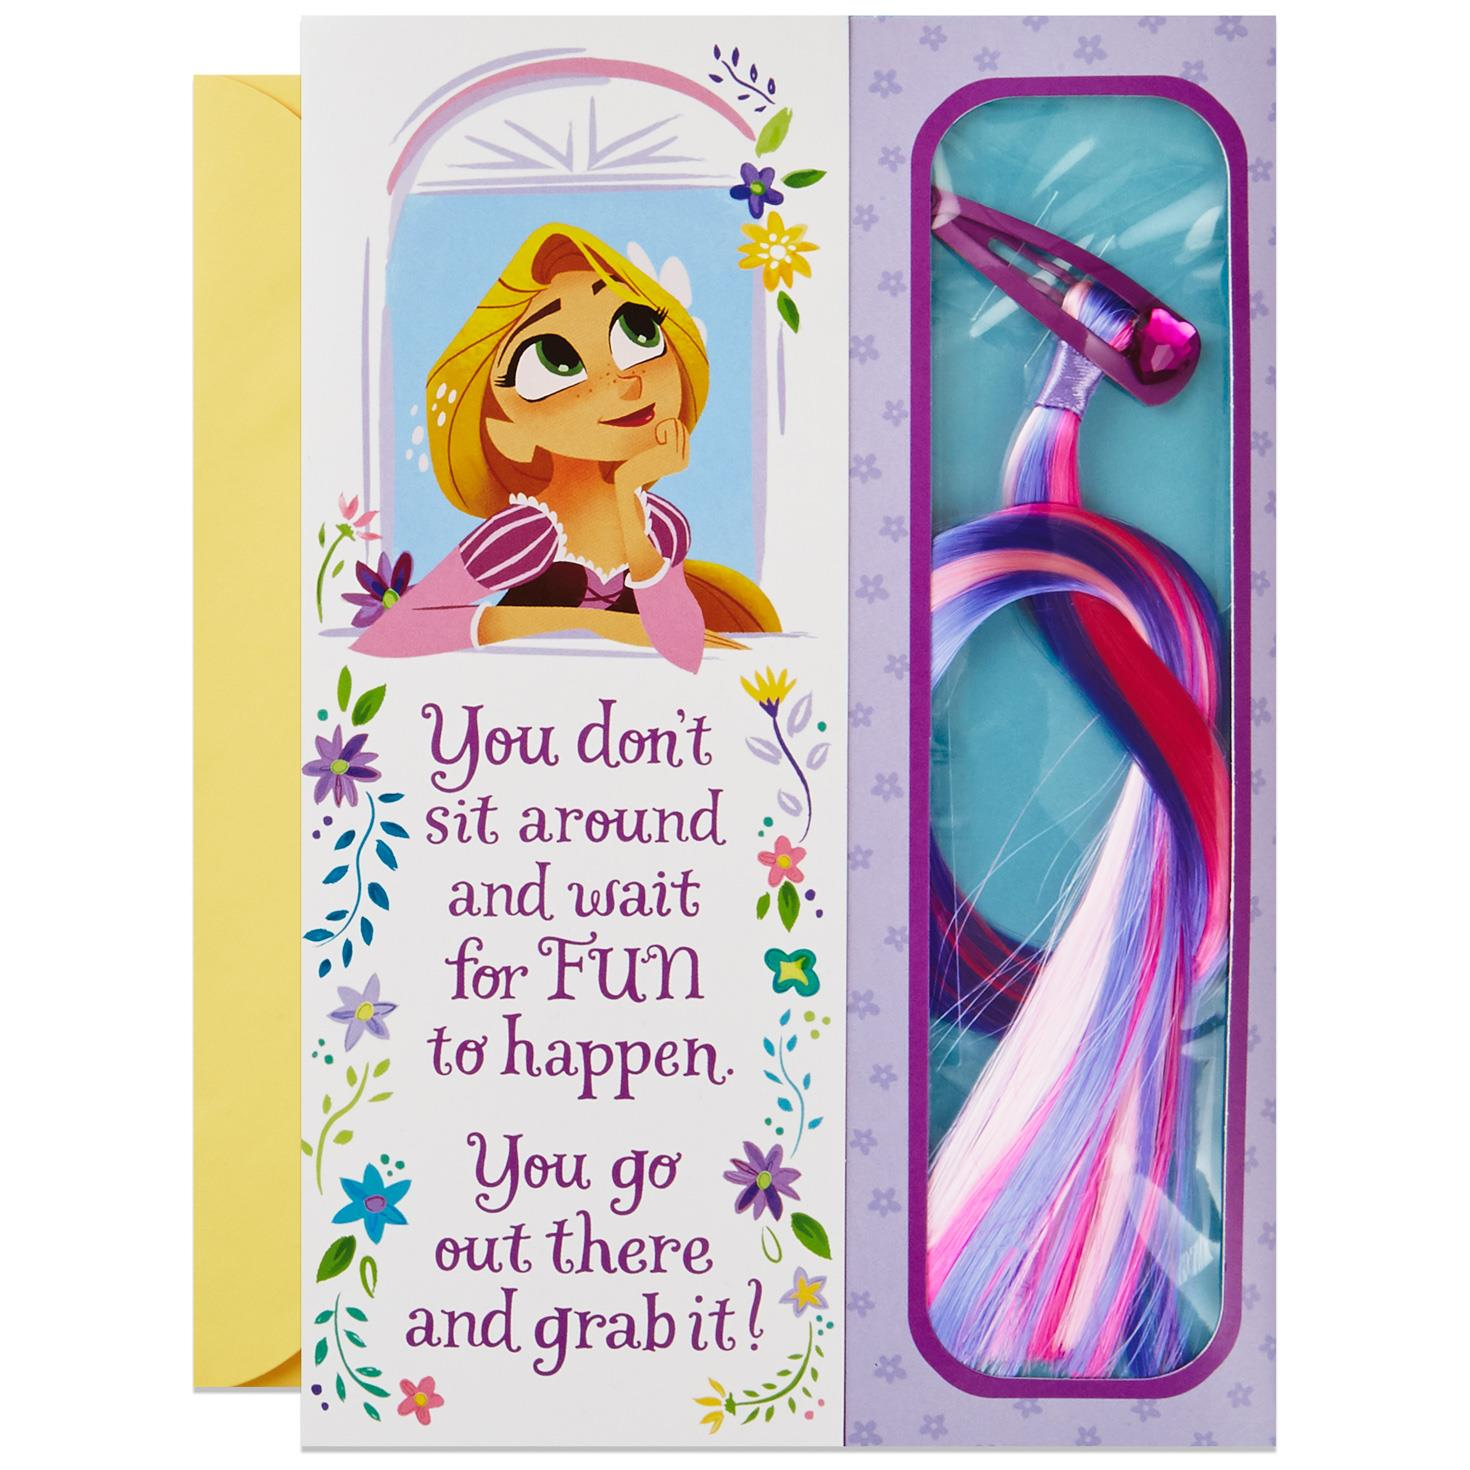 Tangled rapunzel youre amazing birthday card with hair extension tangled rapunzel youre amazing birthday card with hair extension clip bookmarktalkfo Image collections